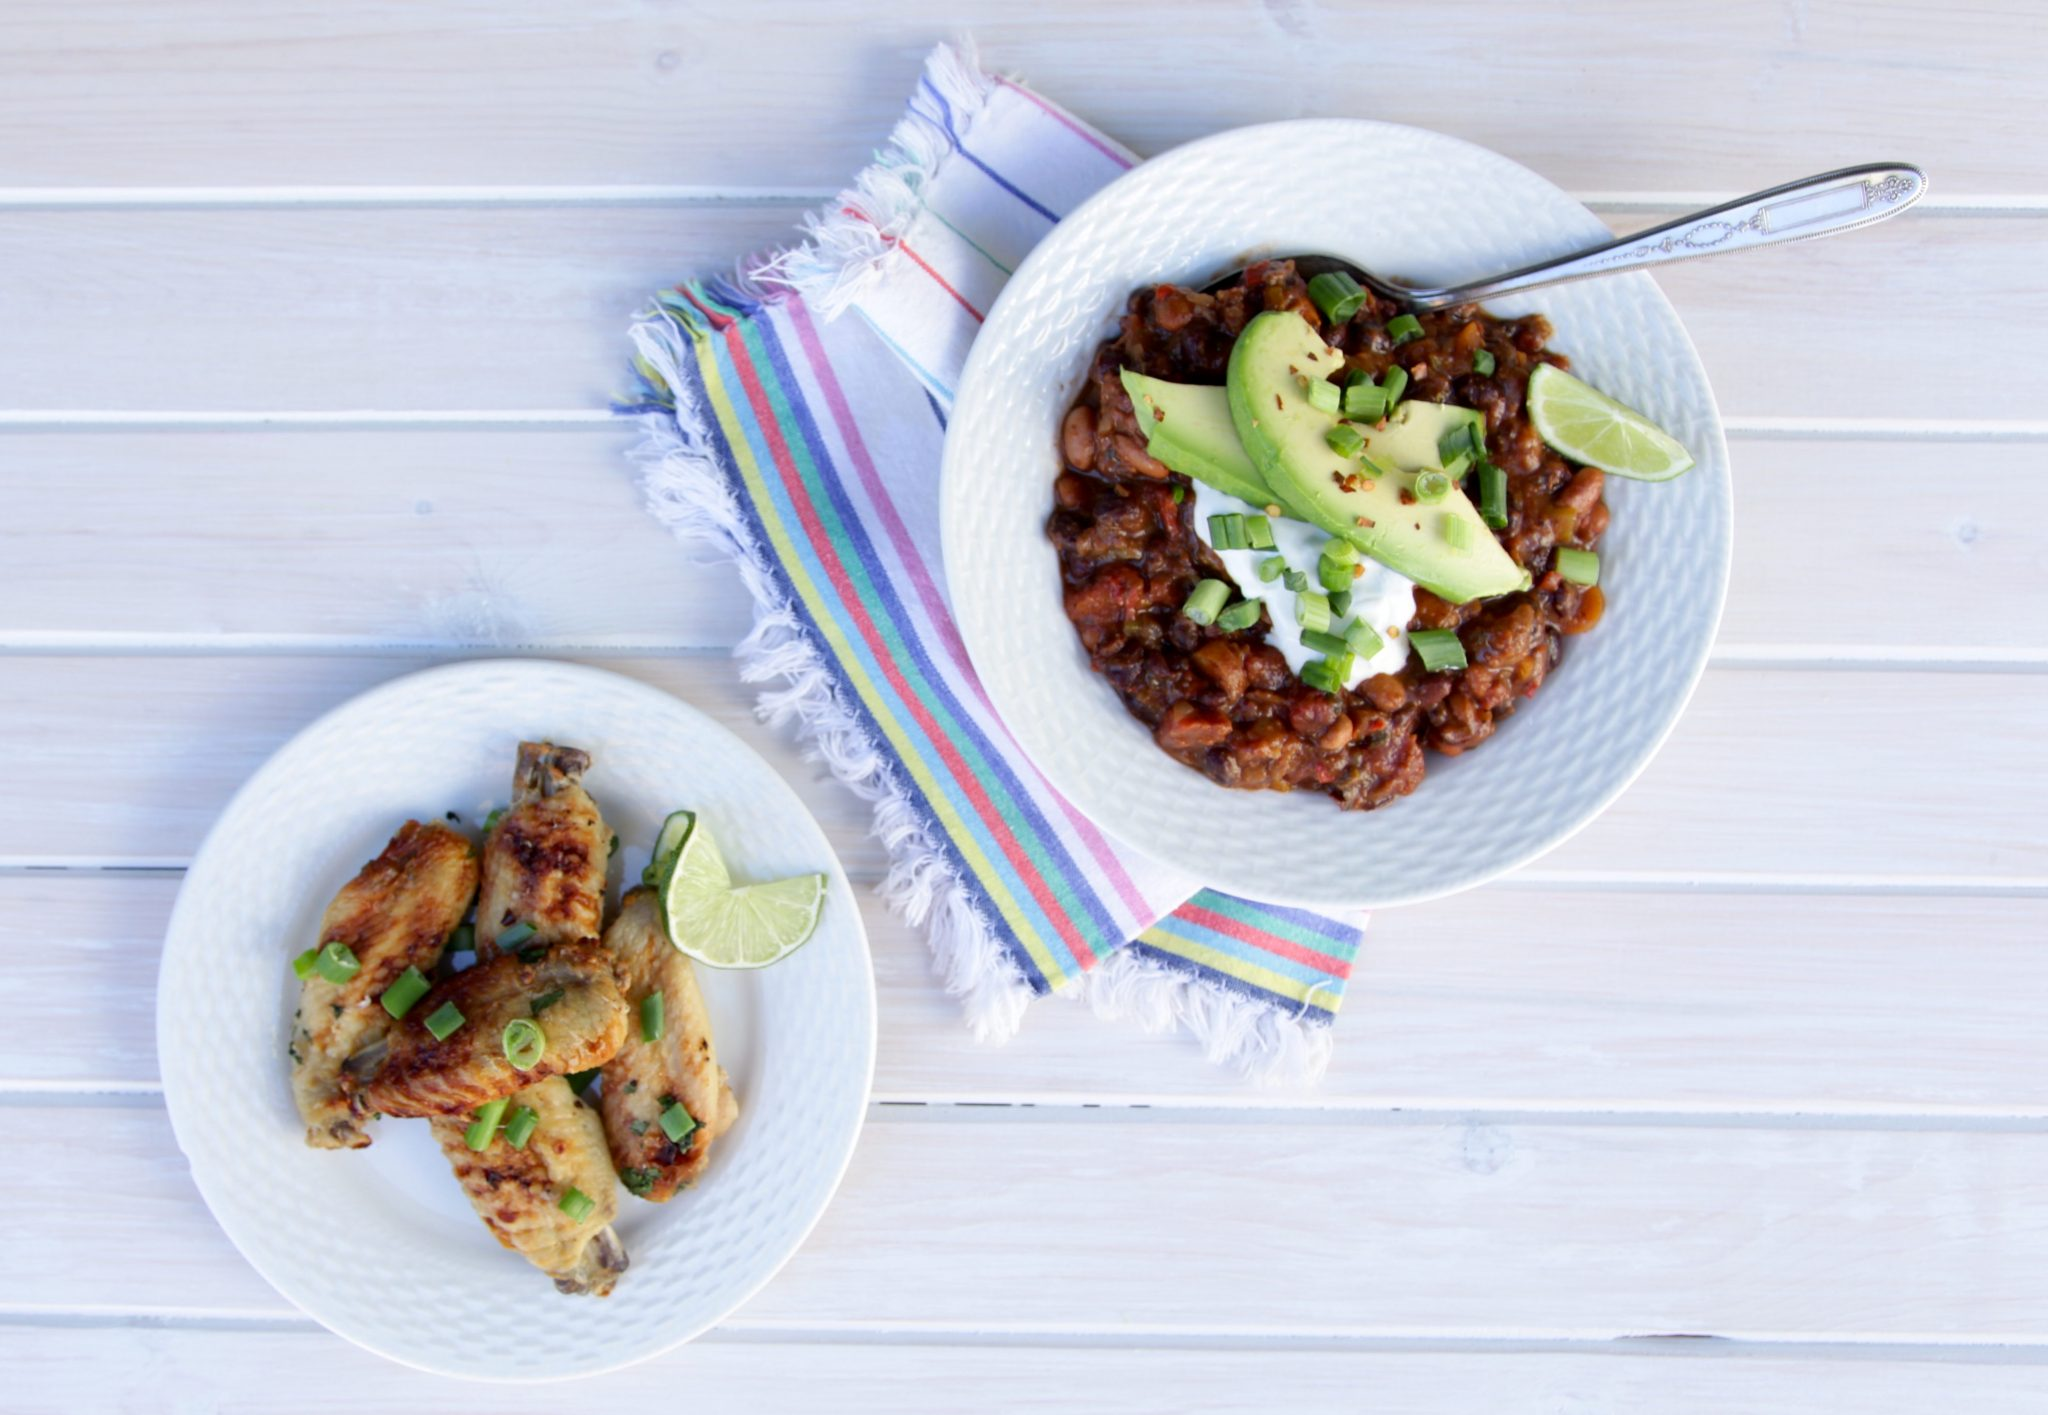 Tequila Lime Chicken Wings & Vegetarian Chili | Rockwell